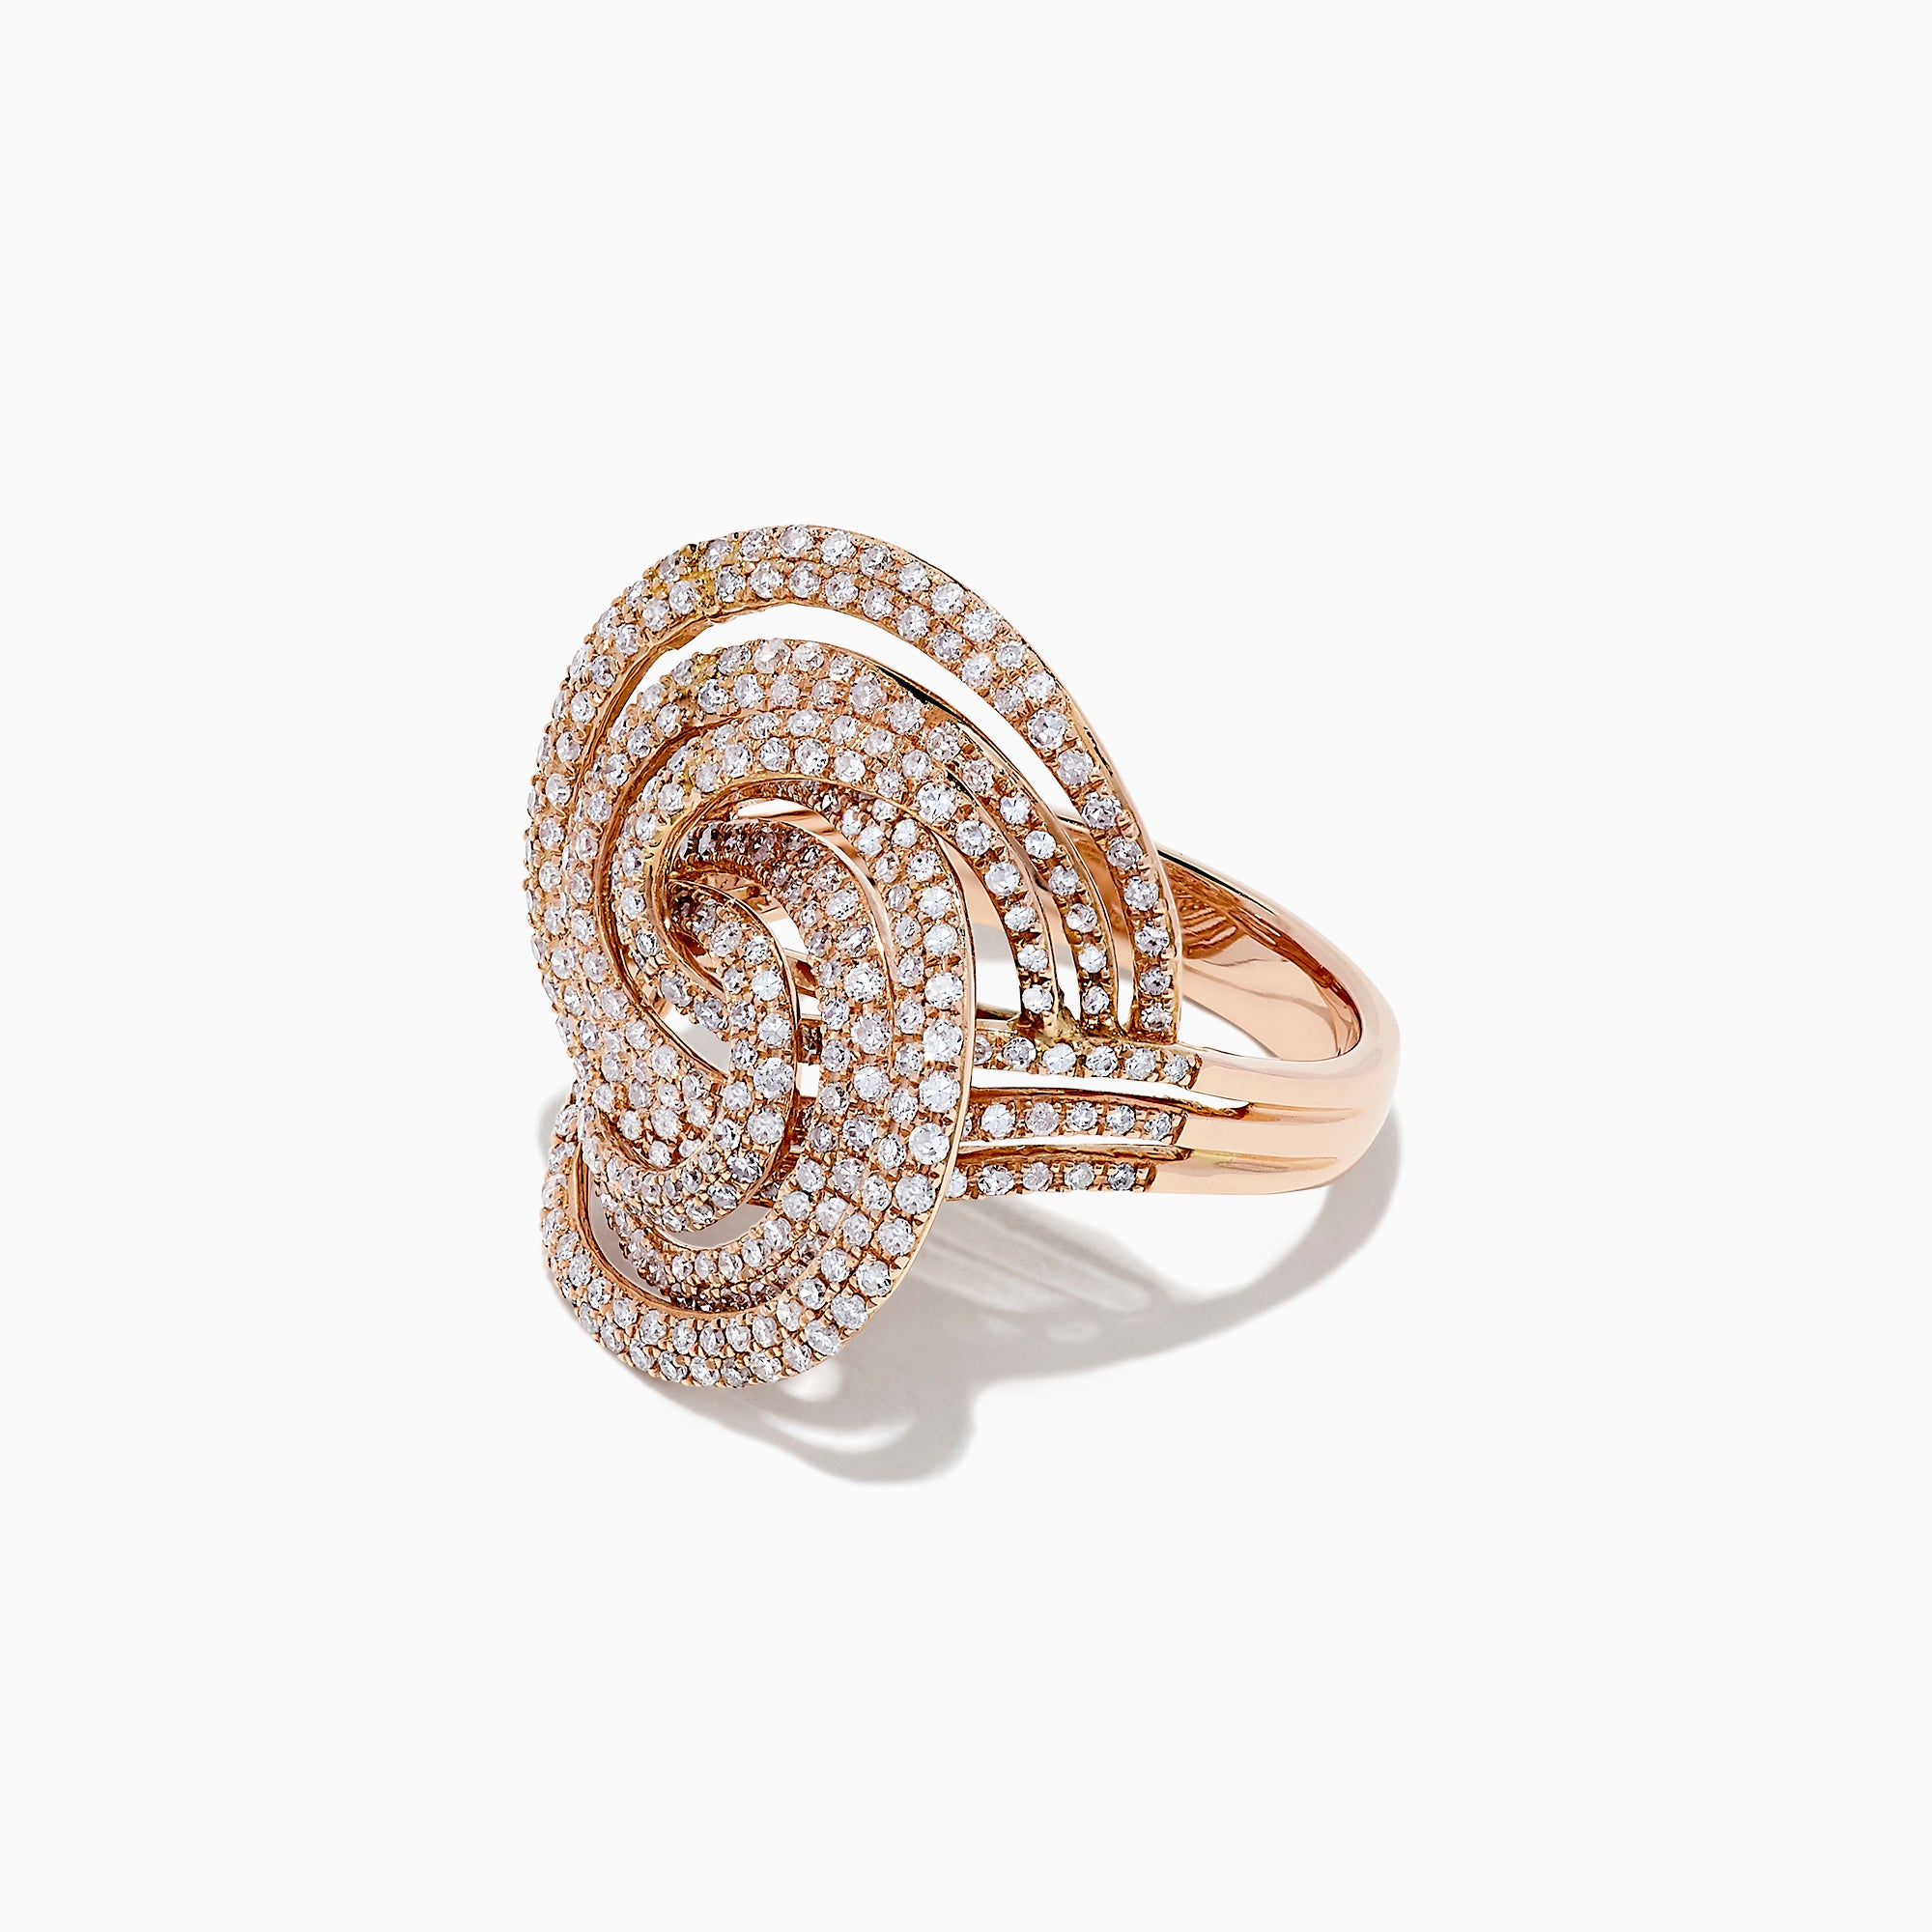 Effy 14K Rose Gold Diamond Swirl Ring, 1.25 TCW